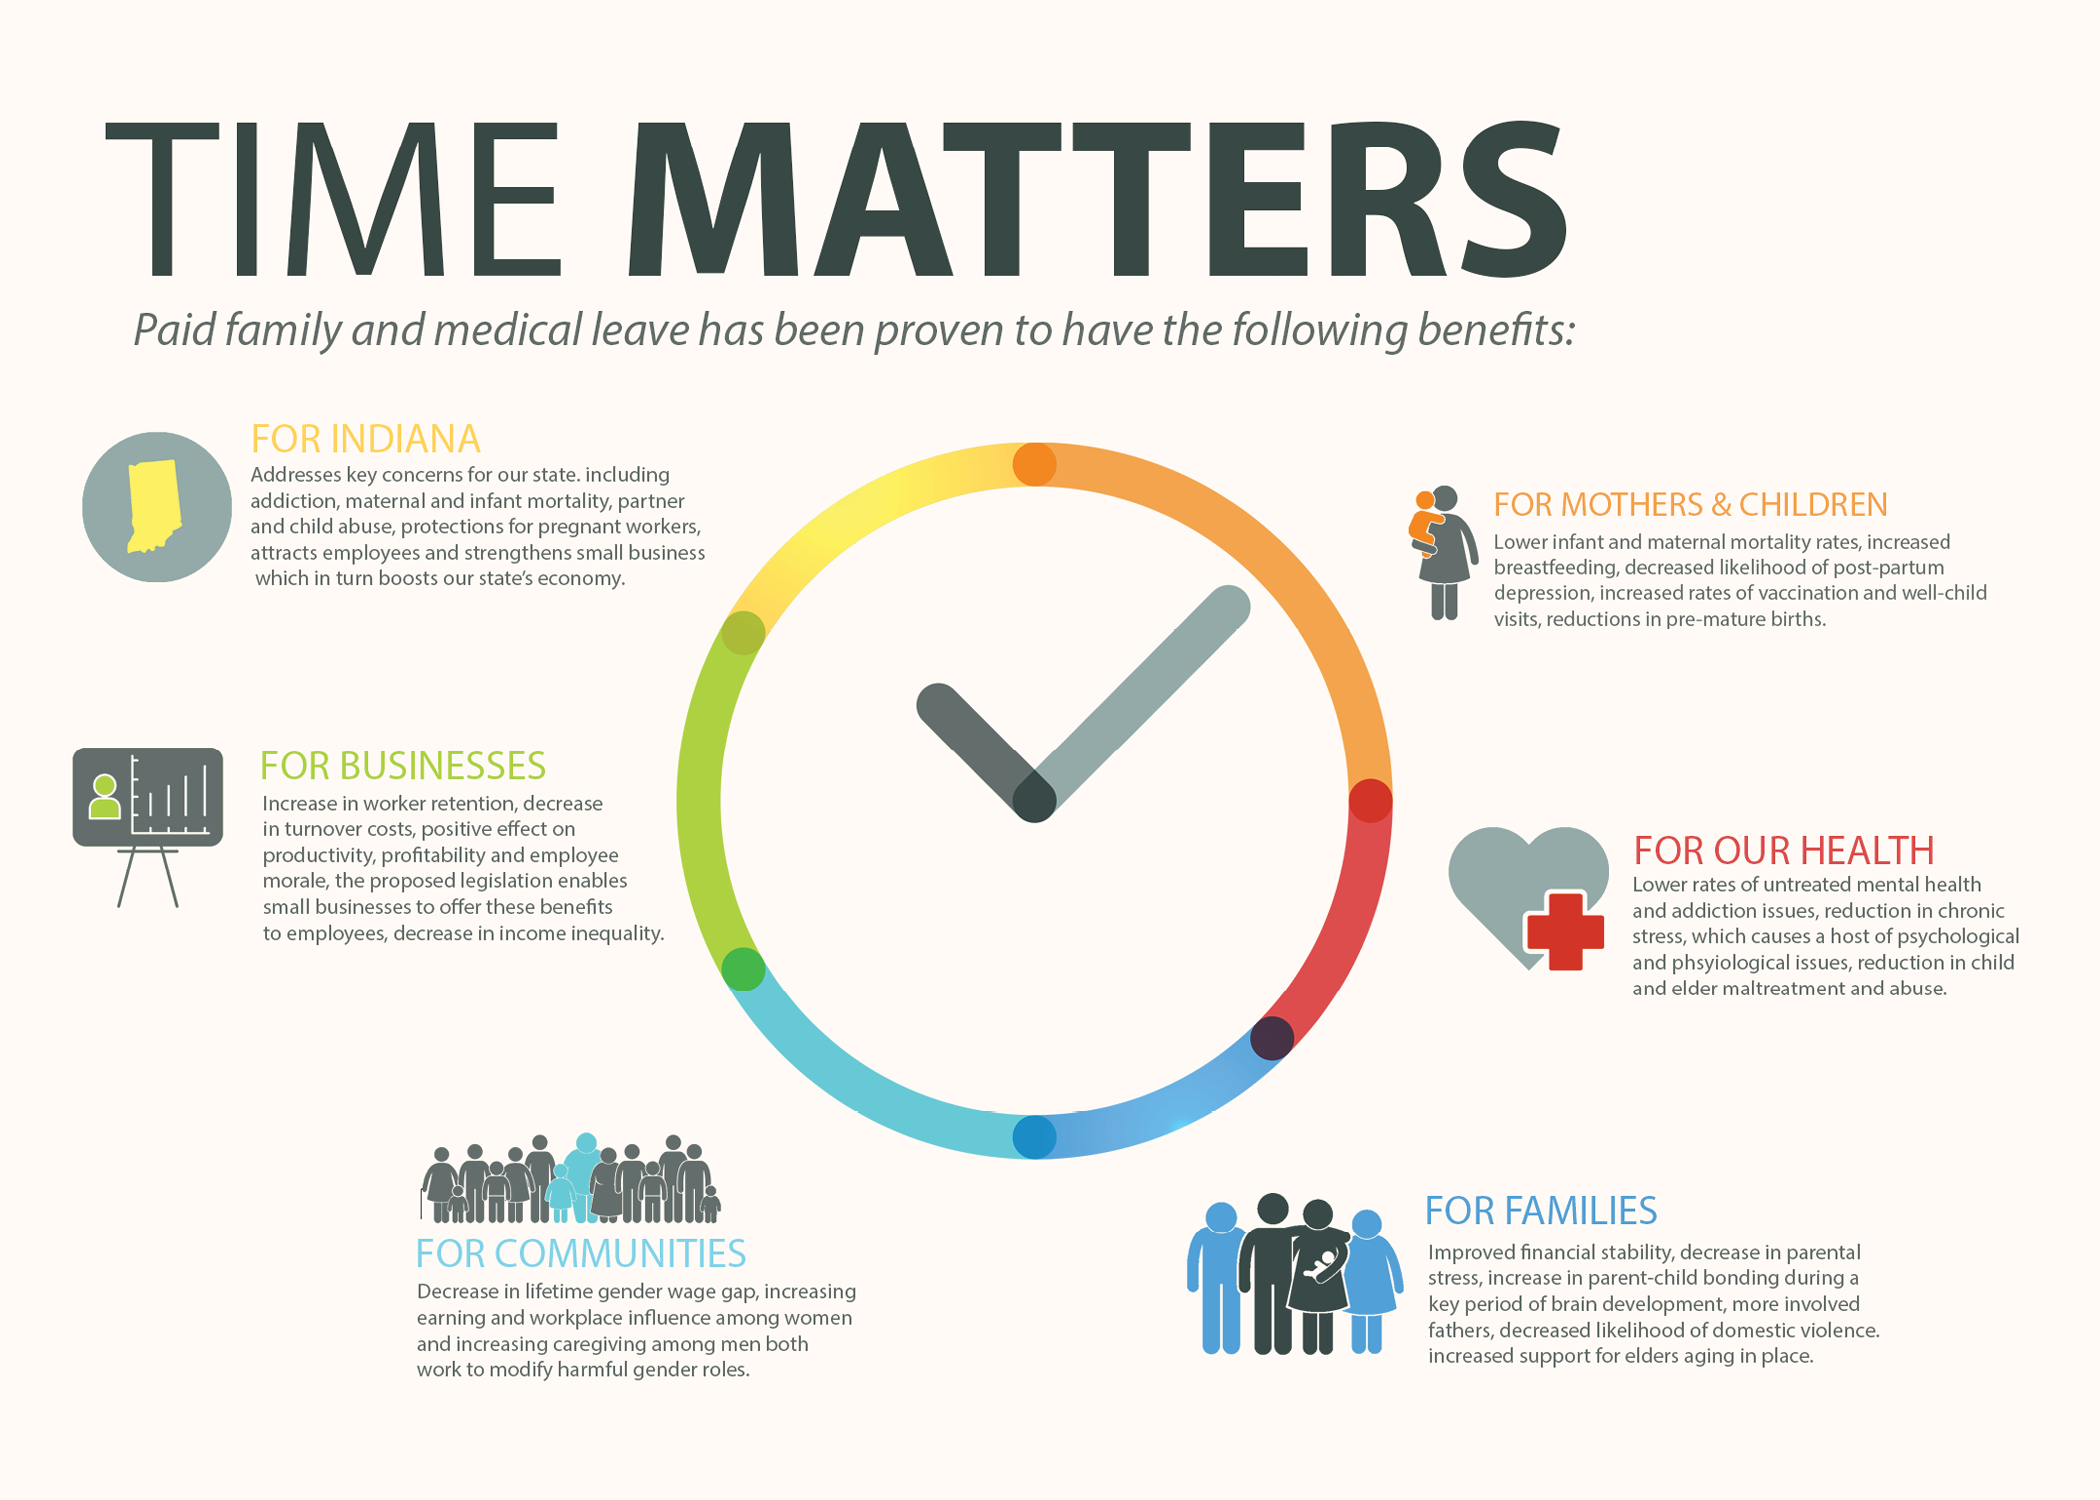 Time matters infographic. Paid family and medical leave has been proven to have benefits for mothers and children, for our health, for families, for communities, for businesses and for our state.